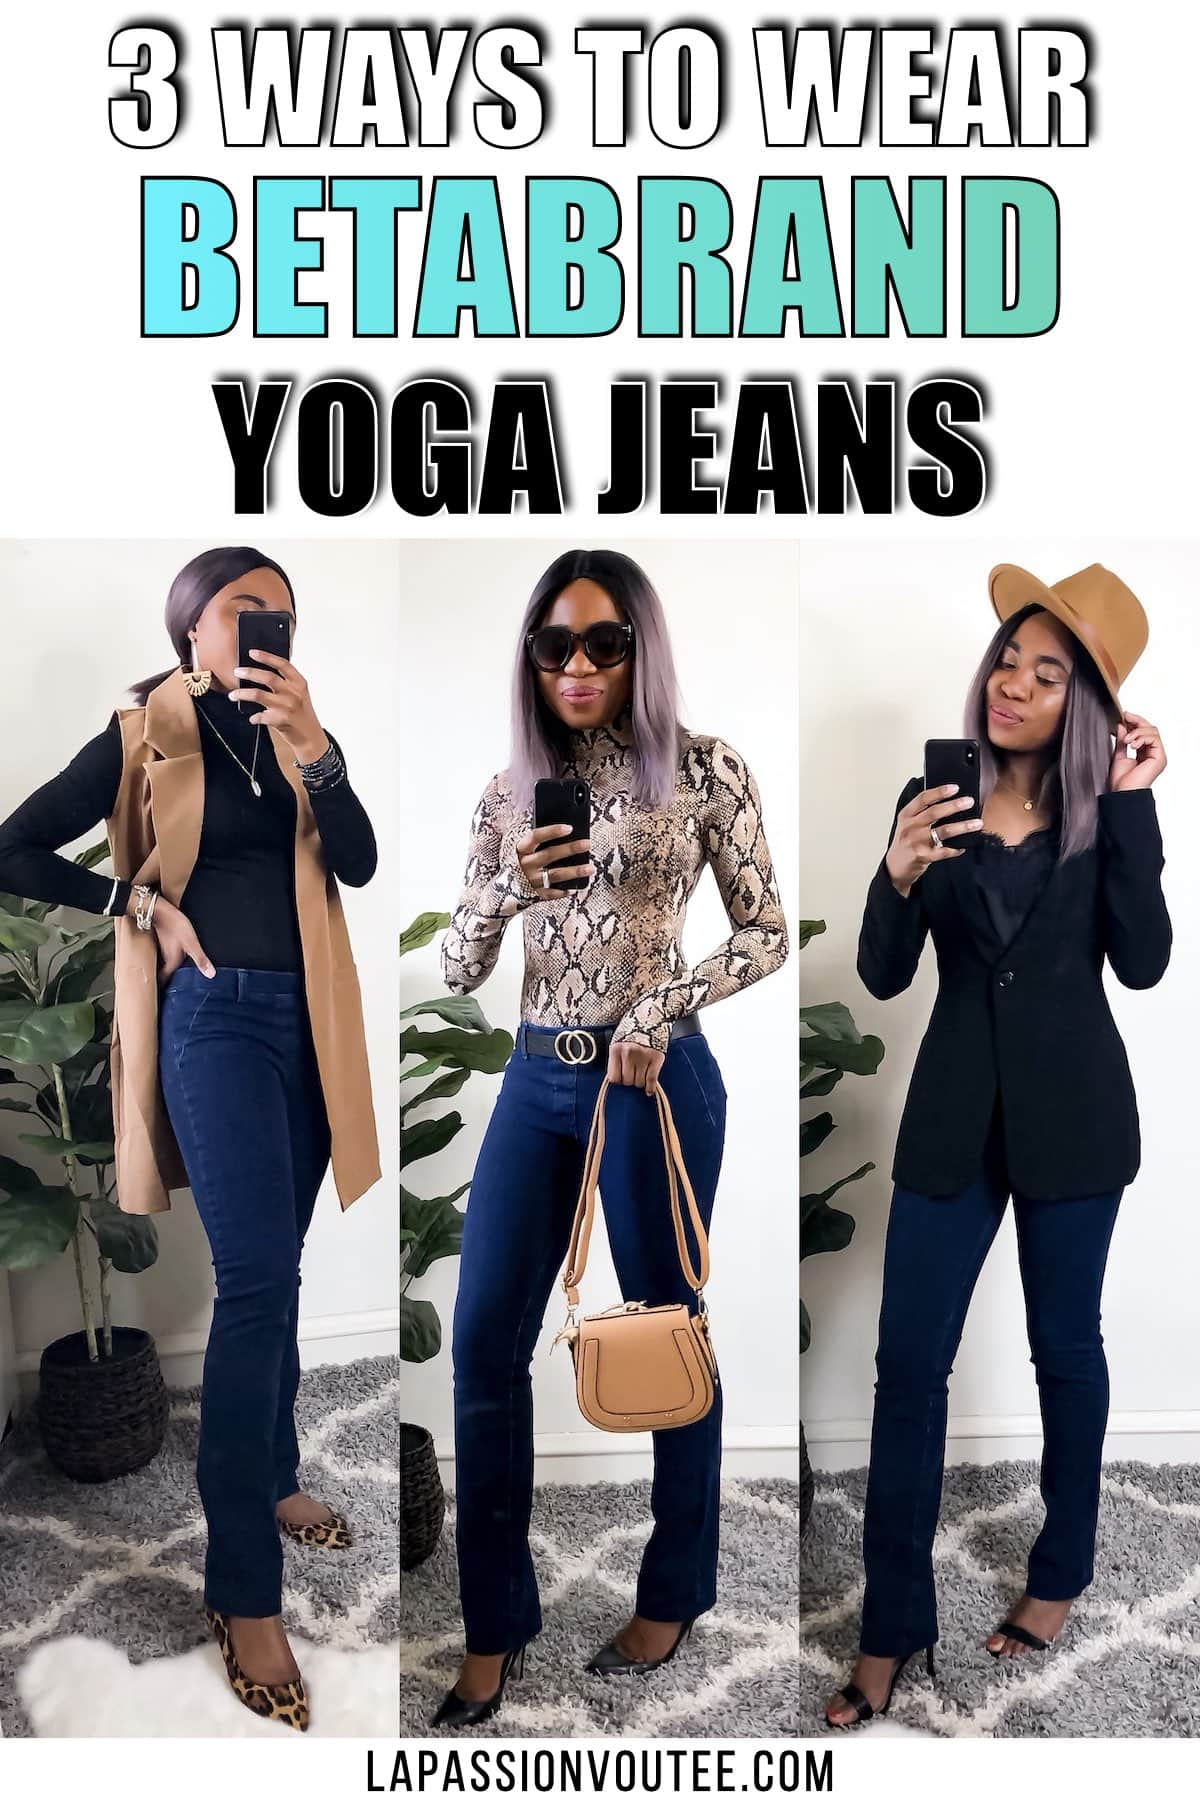 3 Ways to Wear Betabrand Yoga Jeans